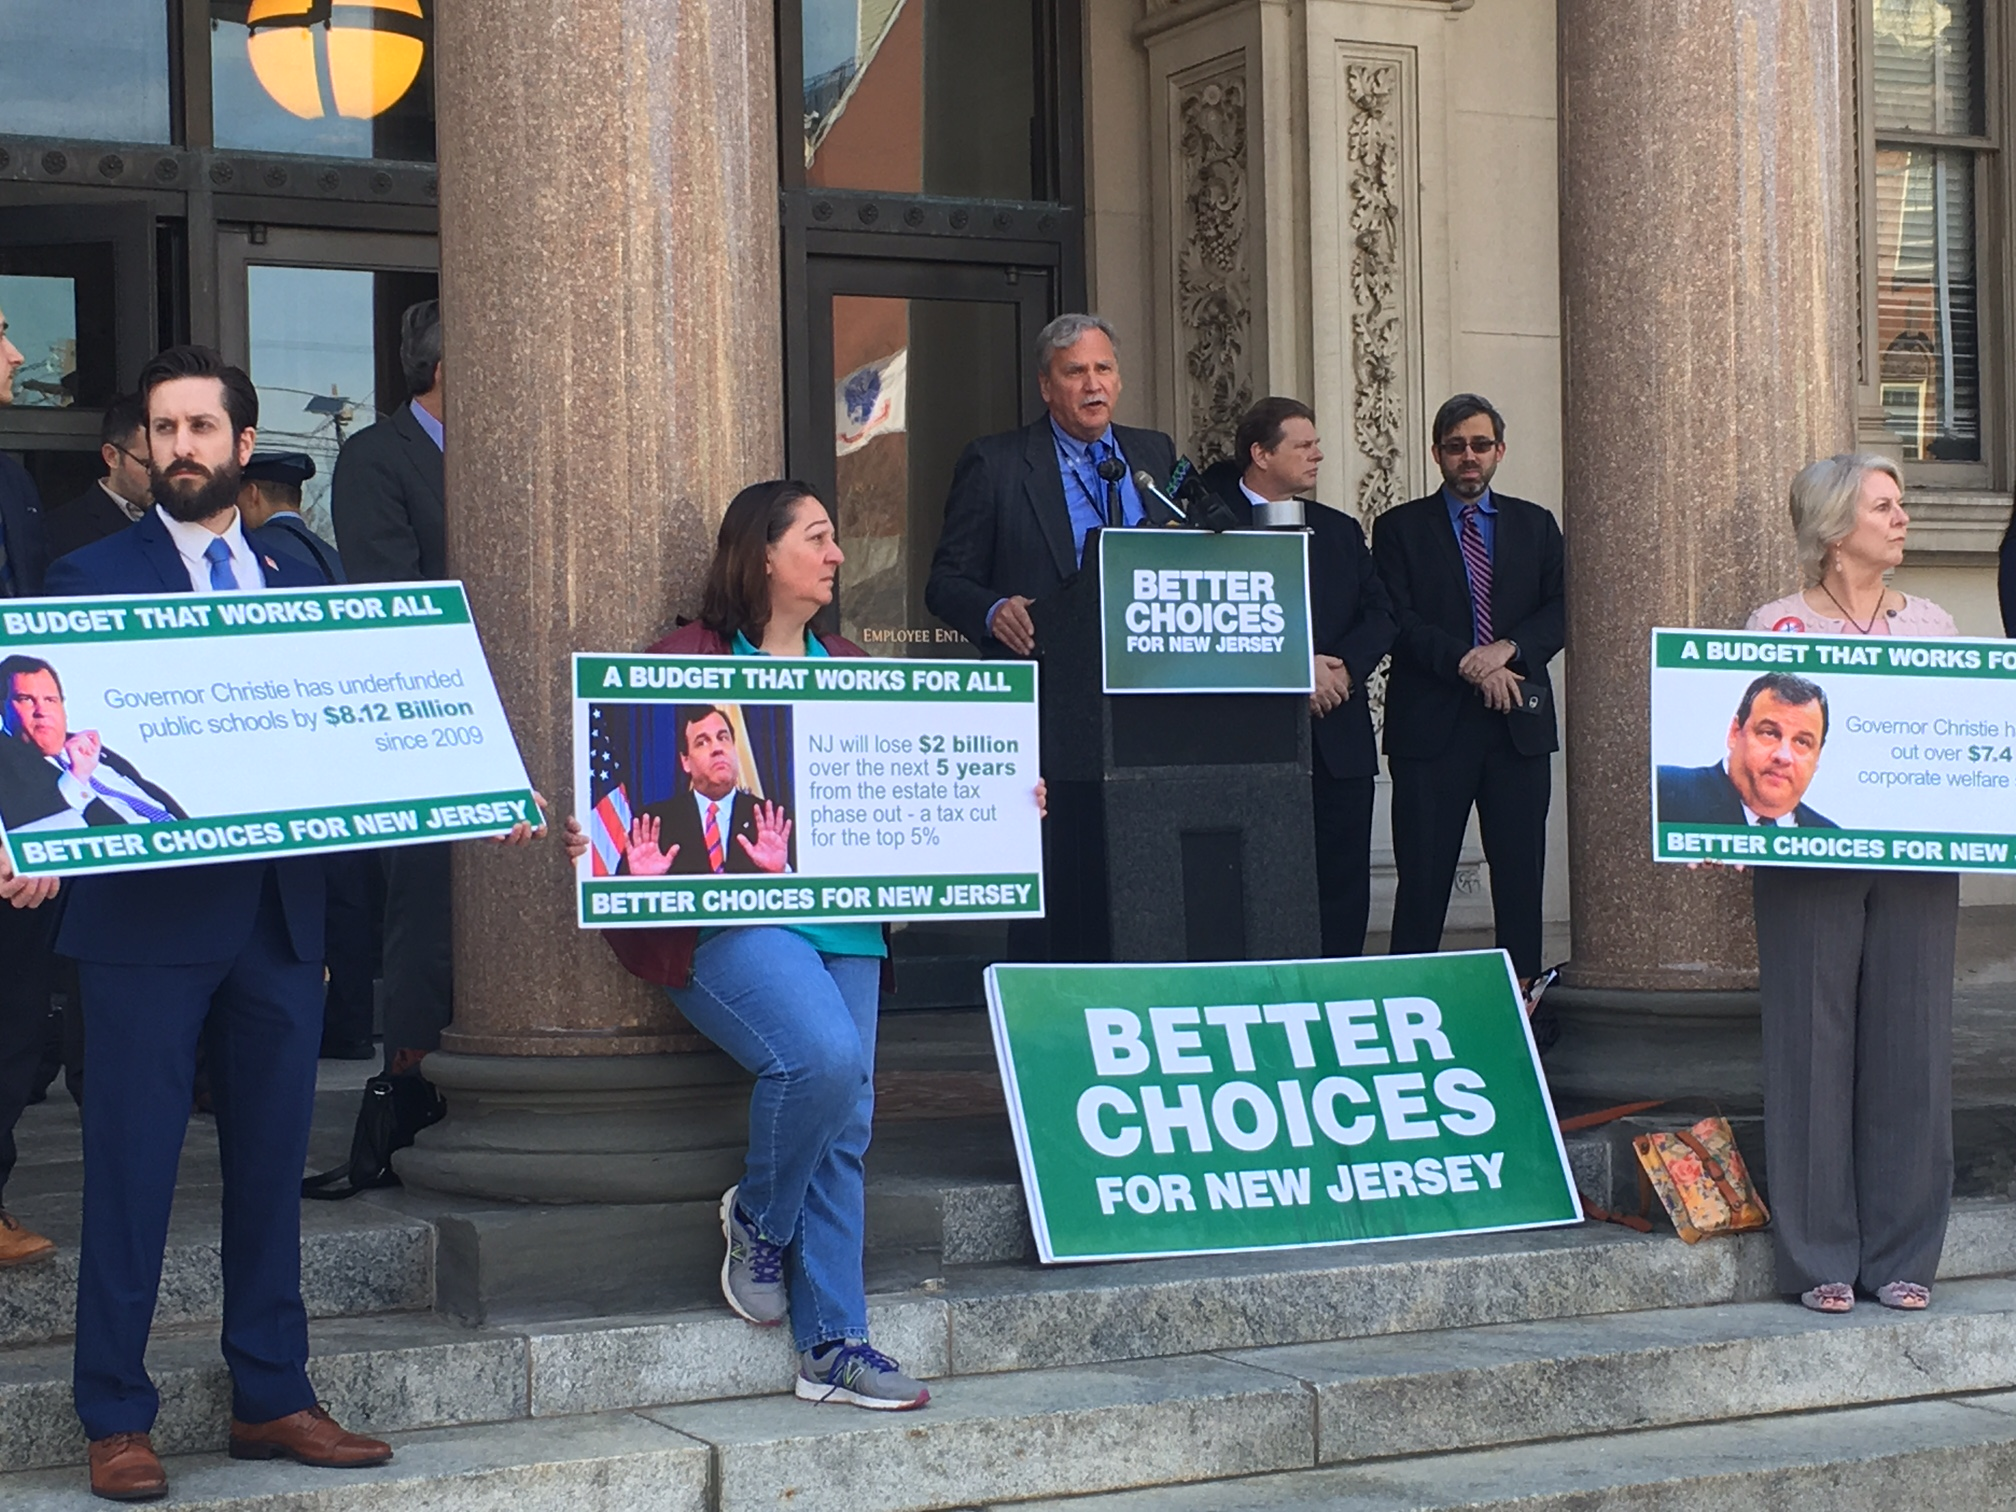 Jeff Tittel of the NJ Sierra Club speaks at a rally ahead of Christie's final budget address.